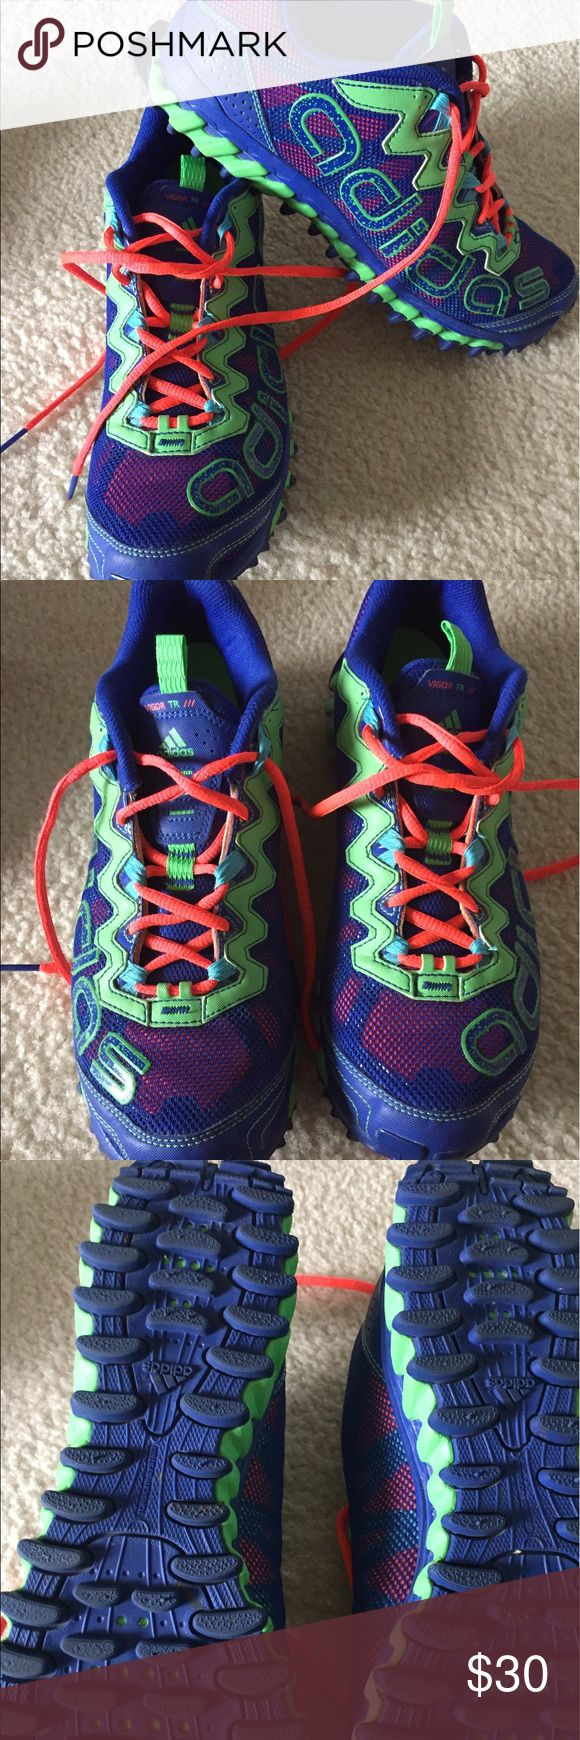 Women's Adidas trail running shoes - SZ 11 Hey ladies I know these are an 11 but the for like a 10. I typically wear a 9.5/10 and these seem to run a bit small so if you wear a 10 normally they should fit perfect!!!!  In great condition have only been worn a handful of times. Super bright and colorful!  A blue purple with orange and bright green accents. Good traction and comfy! adidas Shoes Sneakers